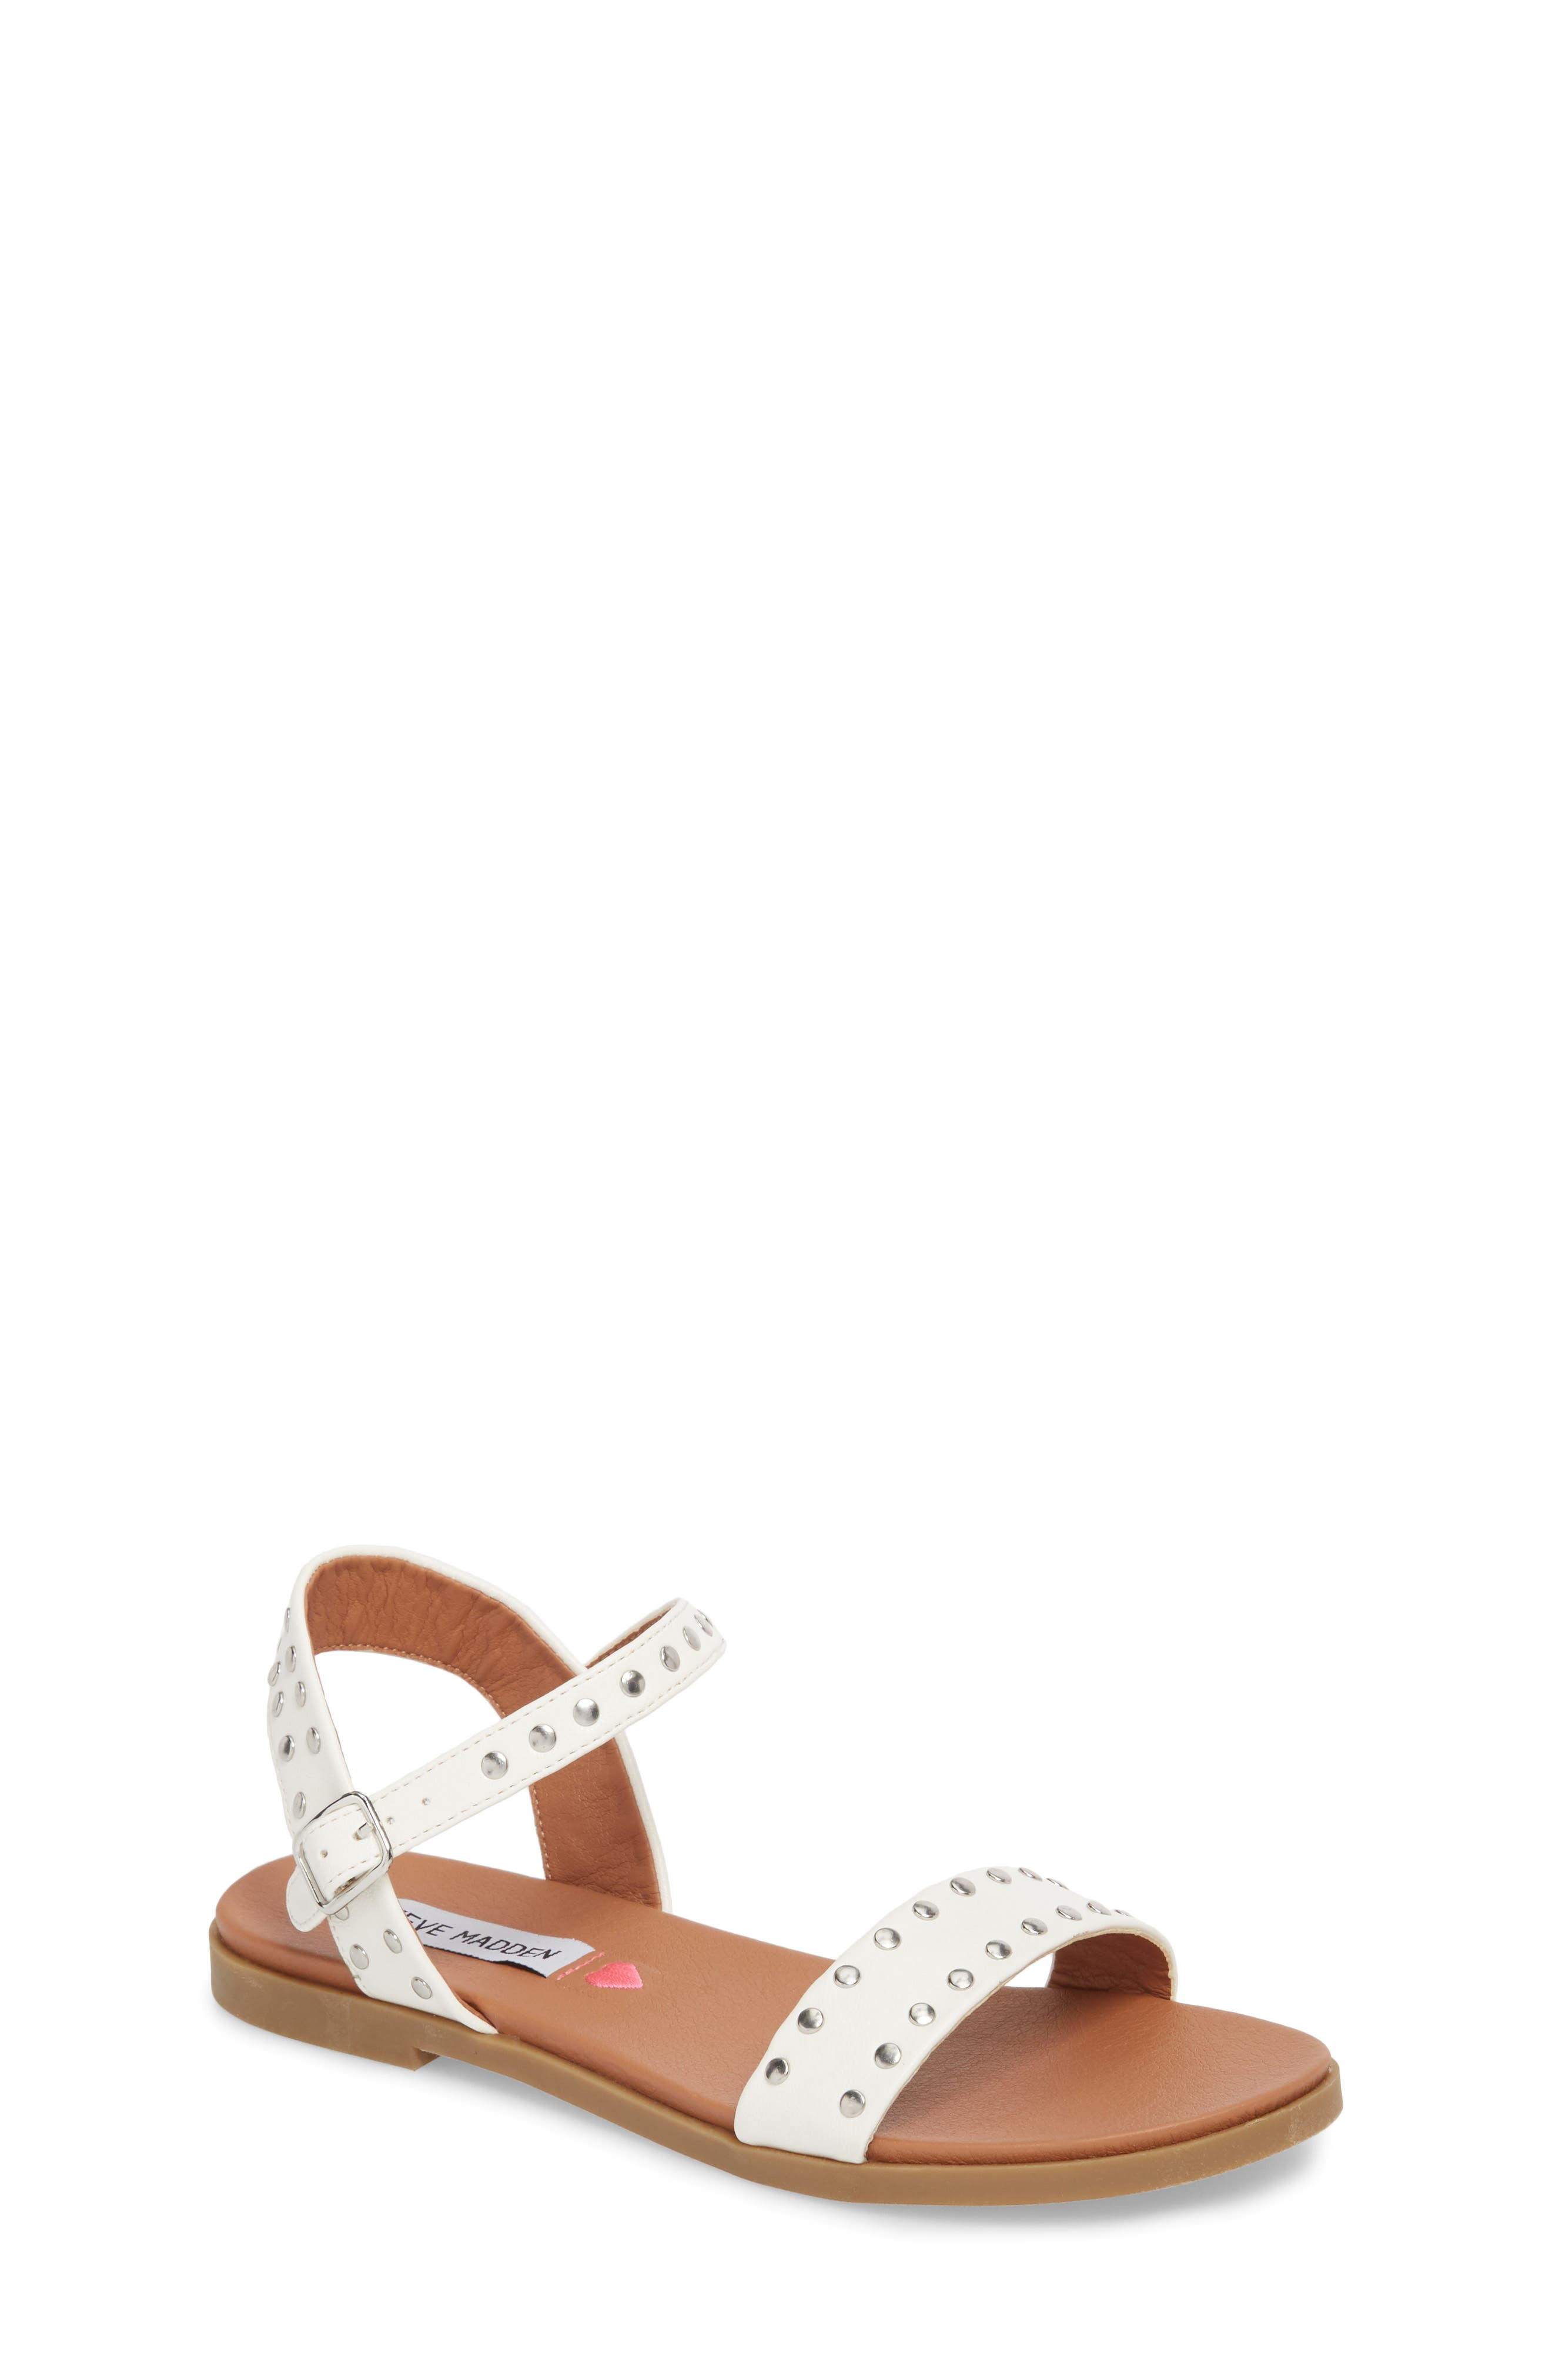 JDONDI Studded Sandal,                             Main thumbnail 1, color,                             WHITE